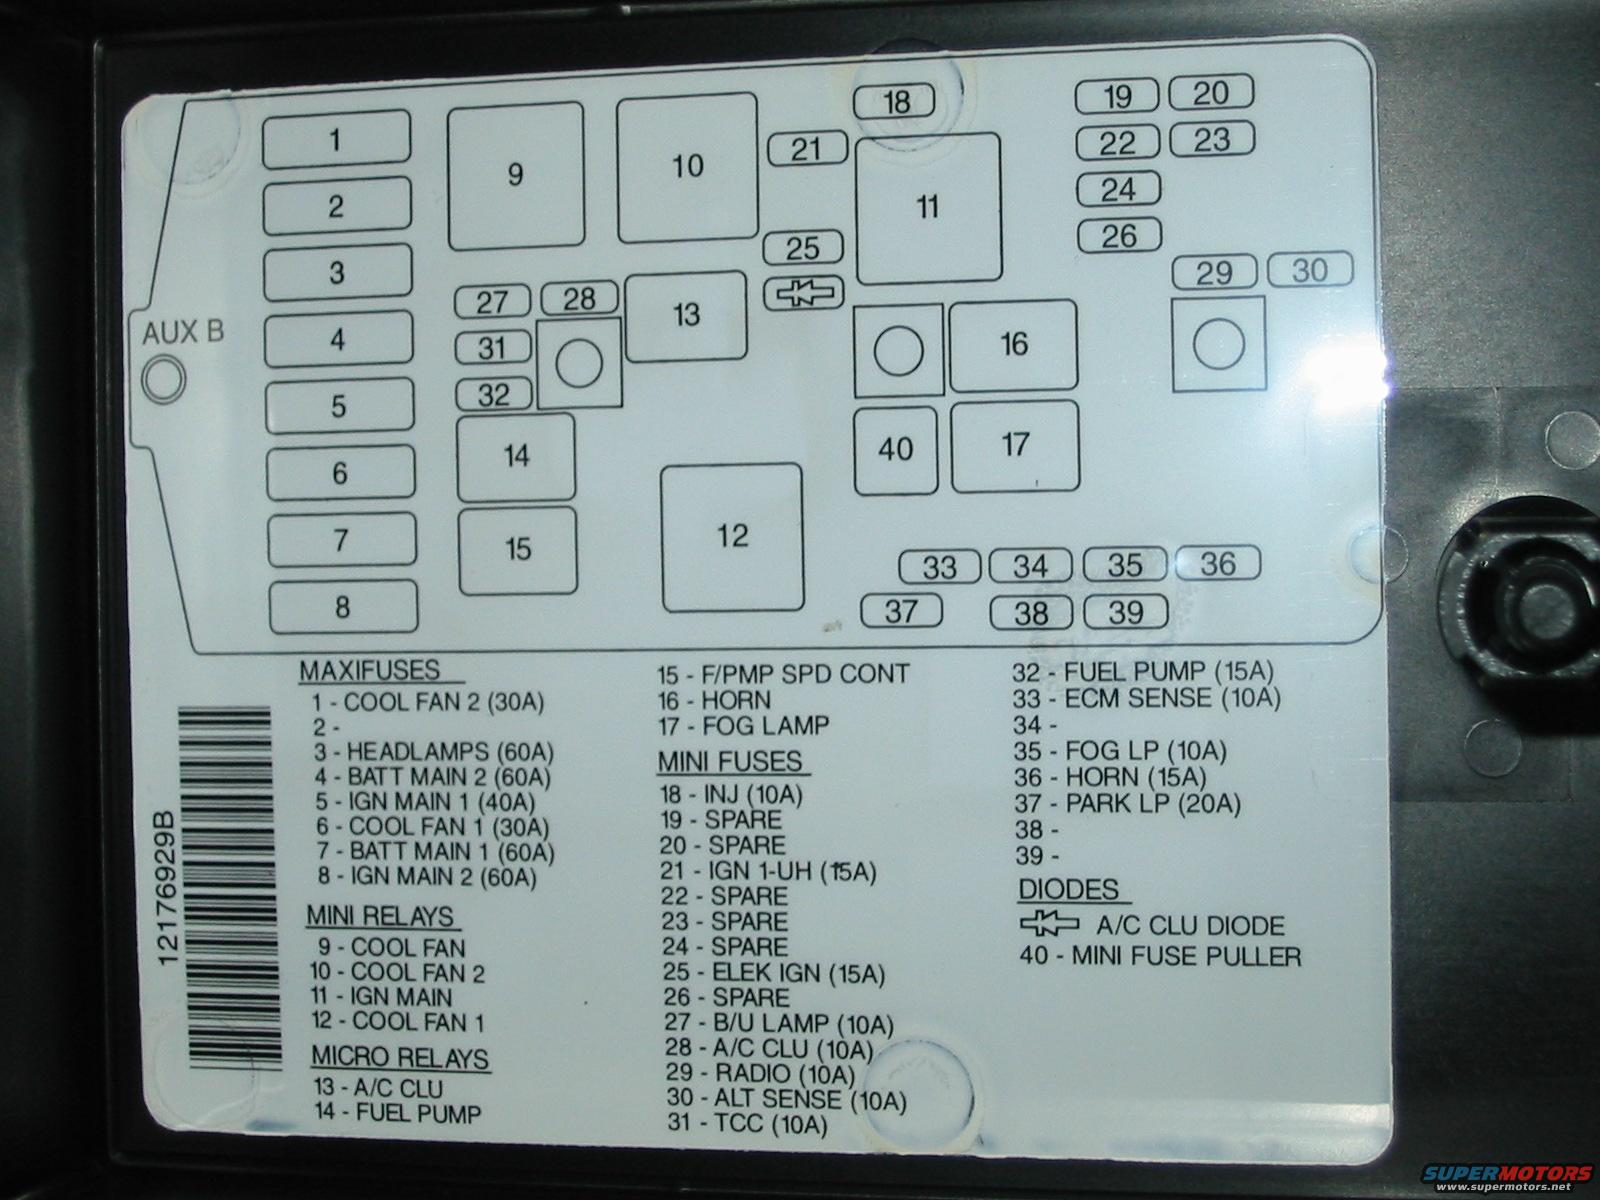 05 Grand Prix Fuse Box Another Blog About Wiring Diagram Vauxhall Astra Mk5 Under Dash And Relay Will Be A Thing U2022 Rh Exploreandmore Co Uk